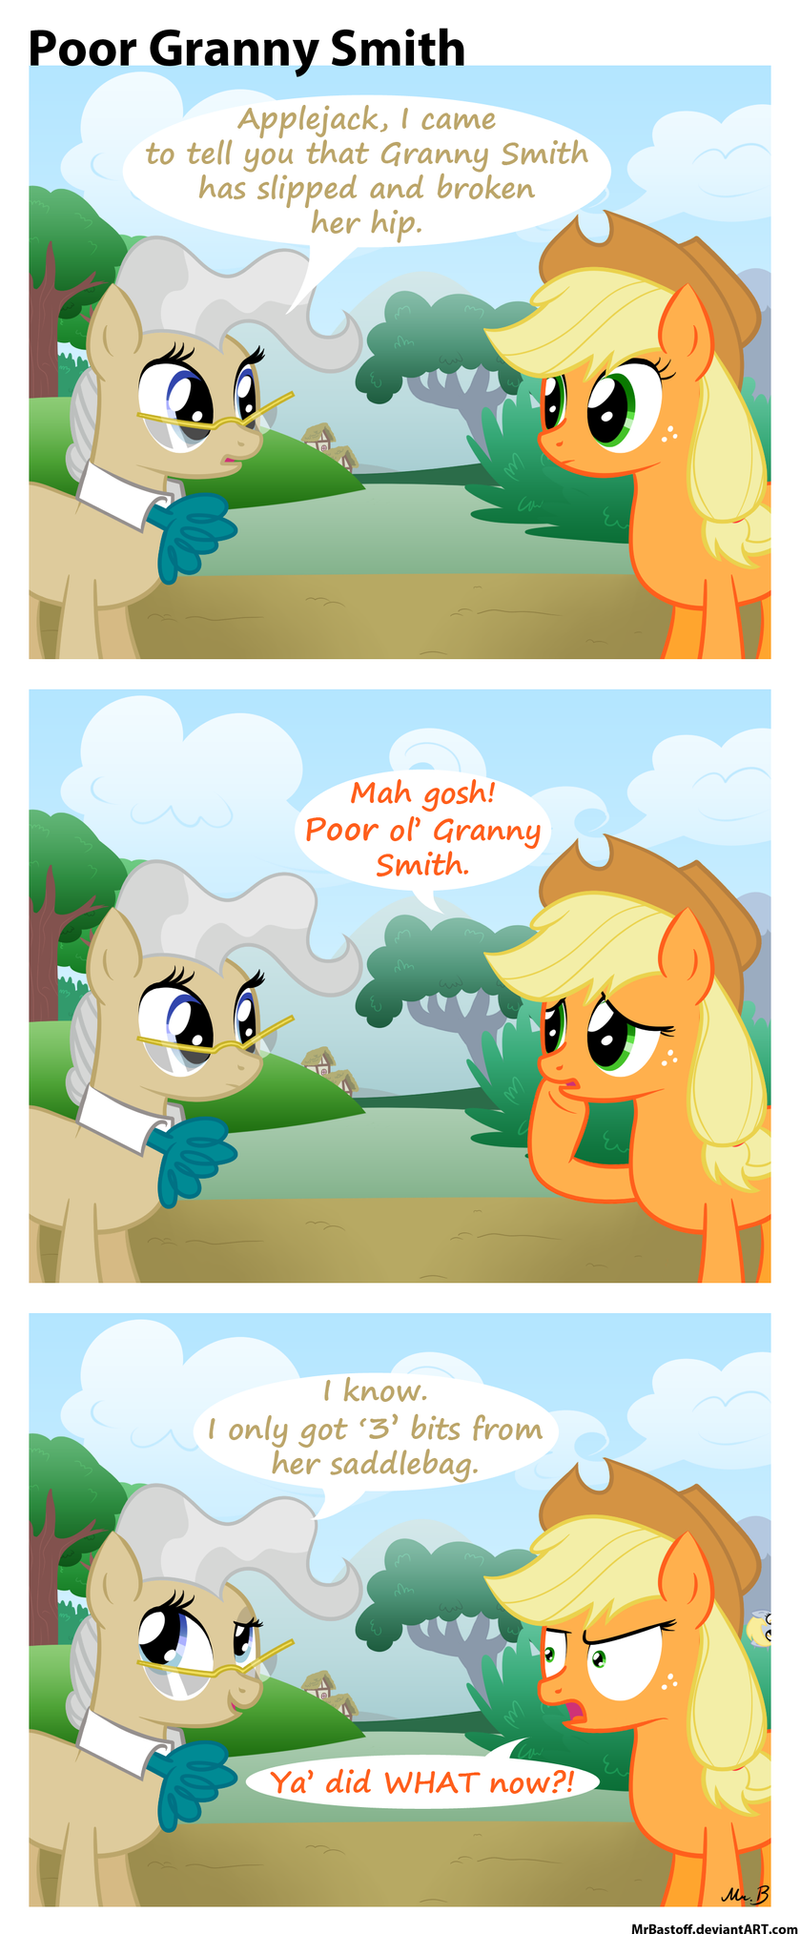 Poor Granny Smith by MrBastoff